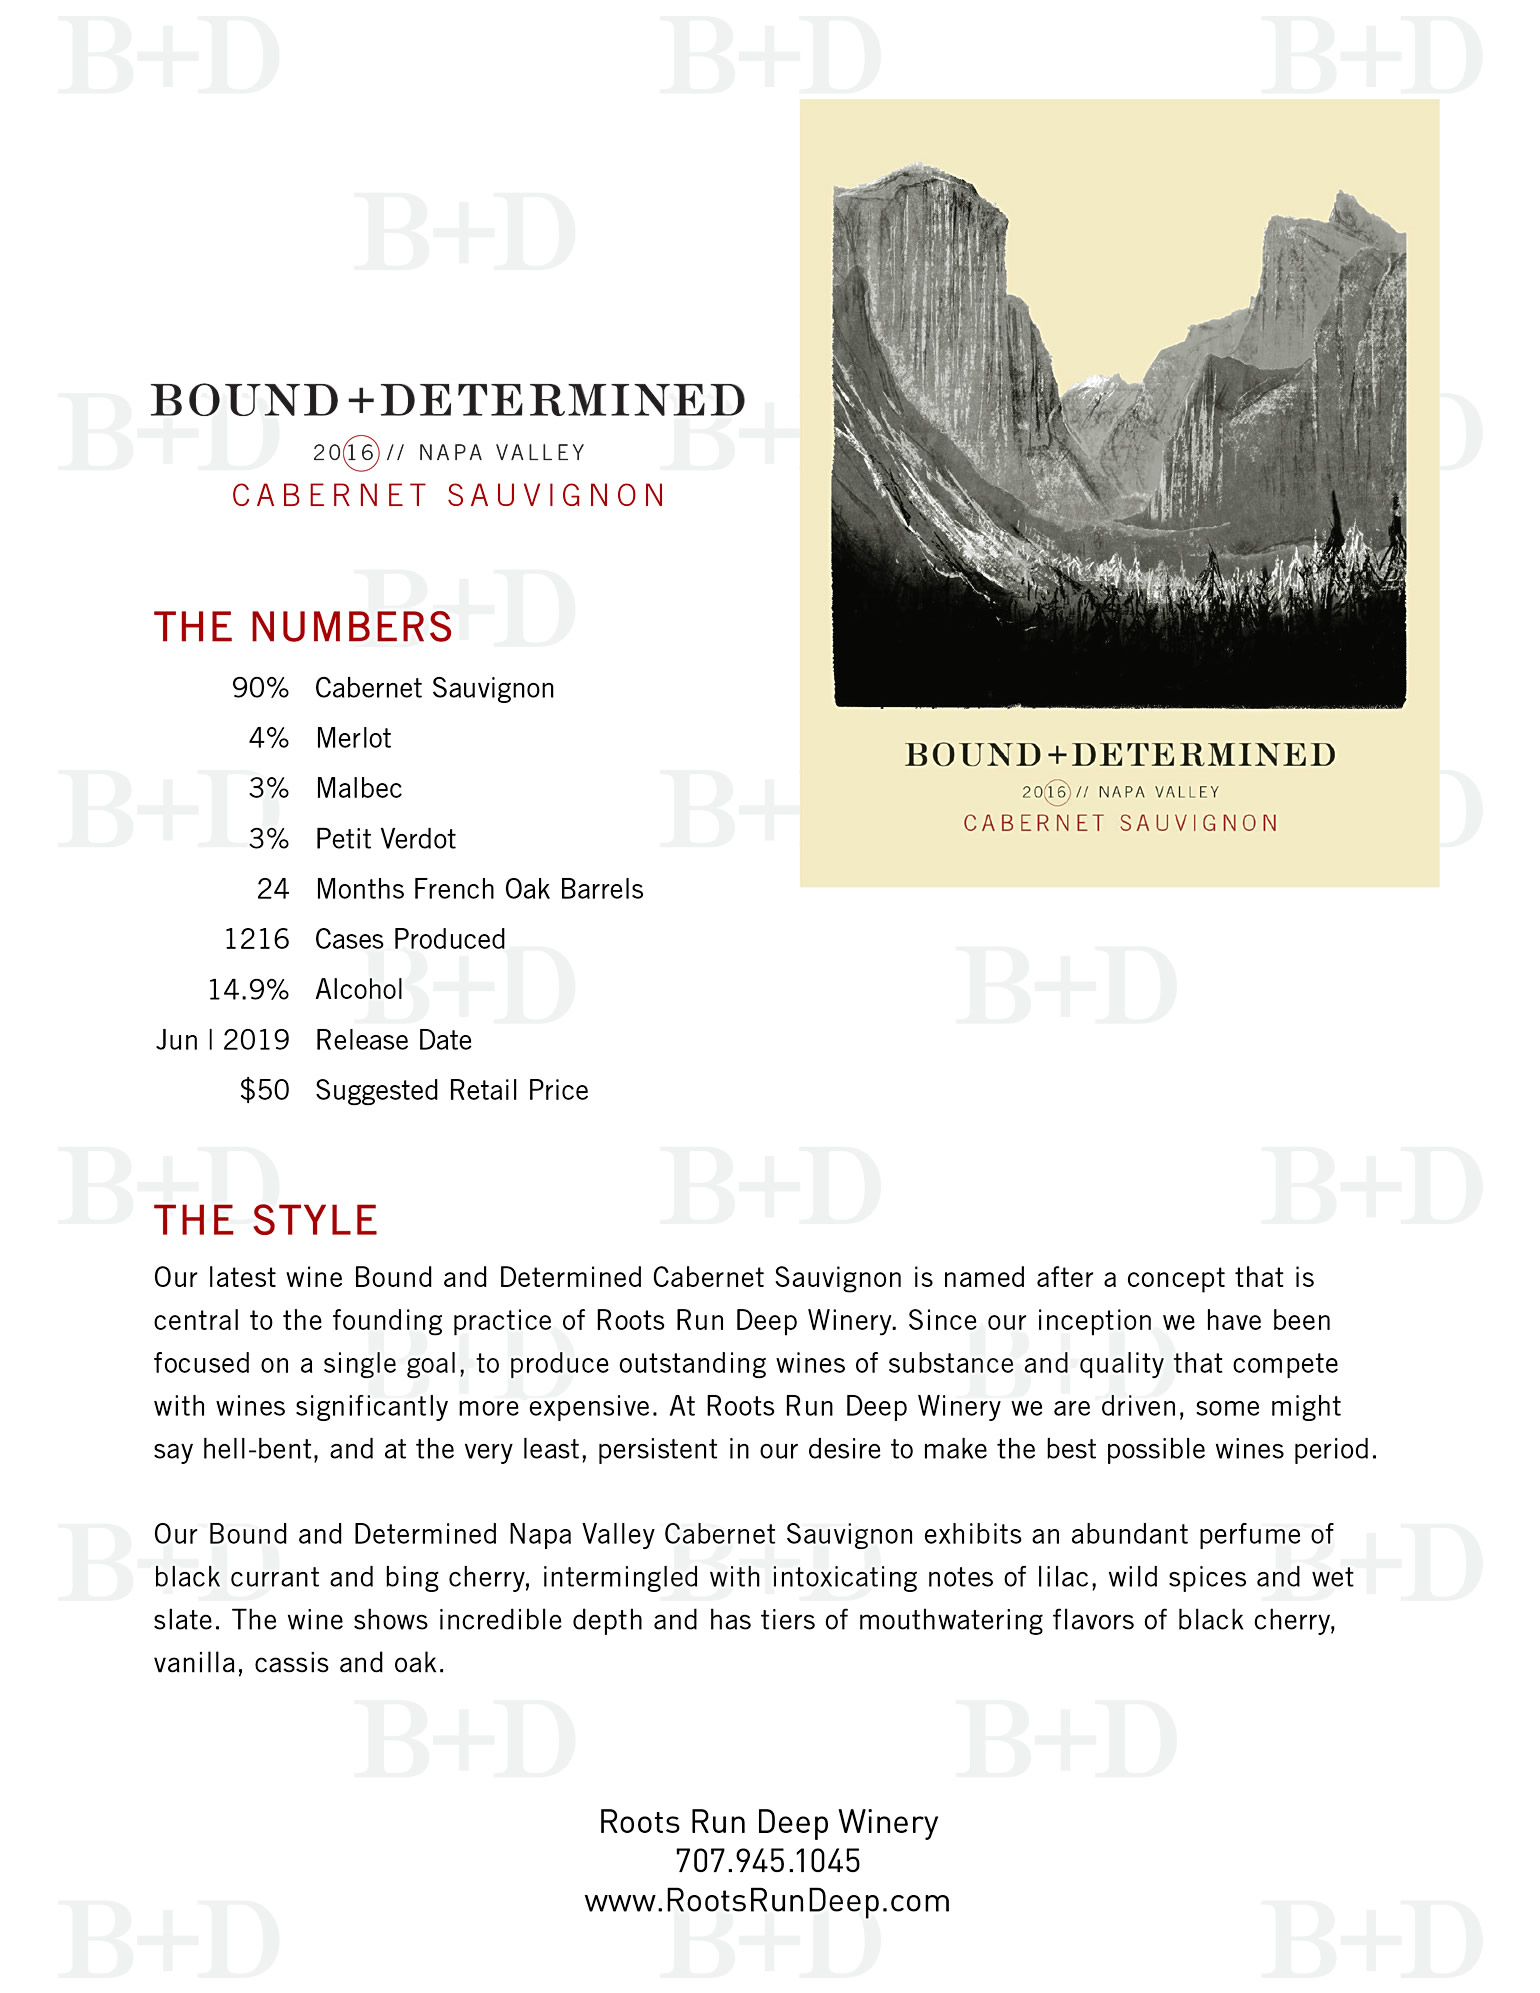 Bound and Determined Cabernet Tech Sheet